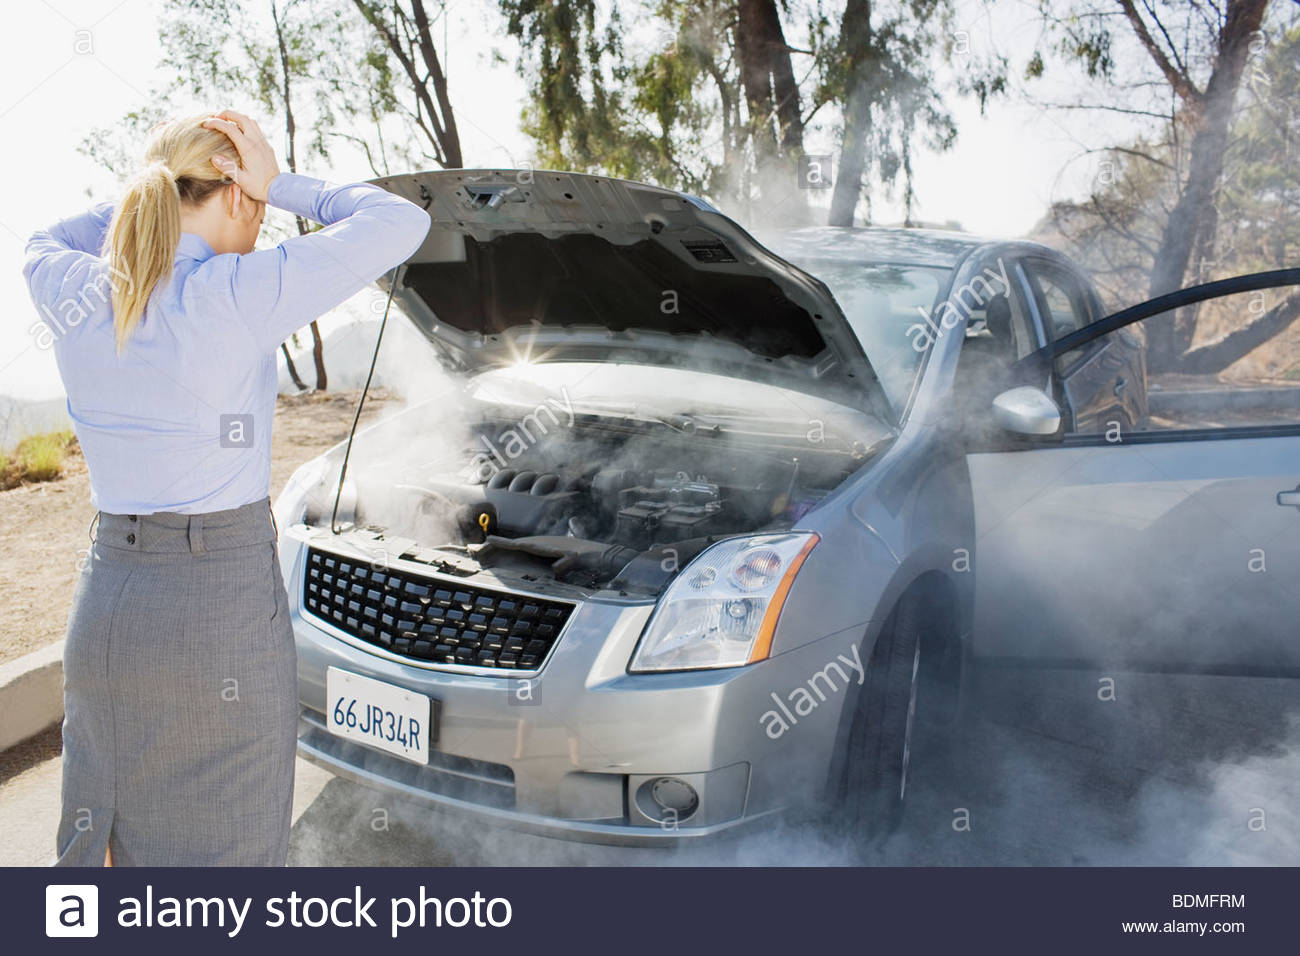 Frustrated woman looking at smoking car engine - Stock Image